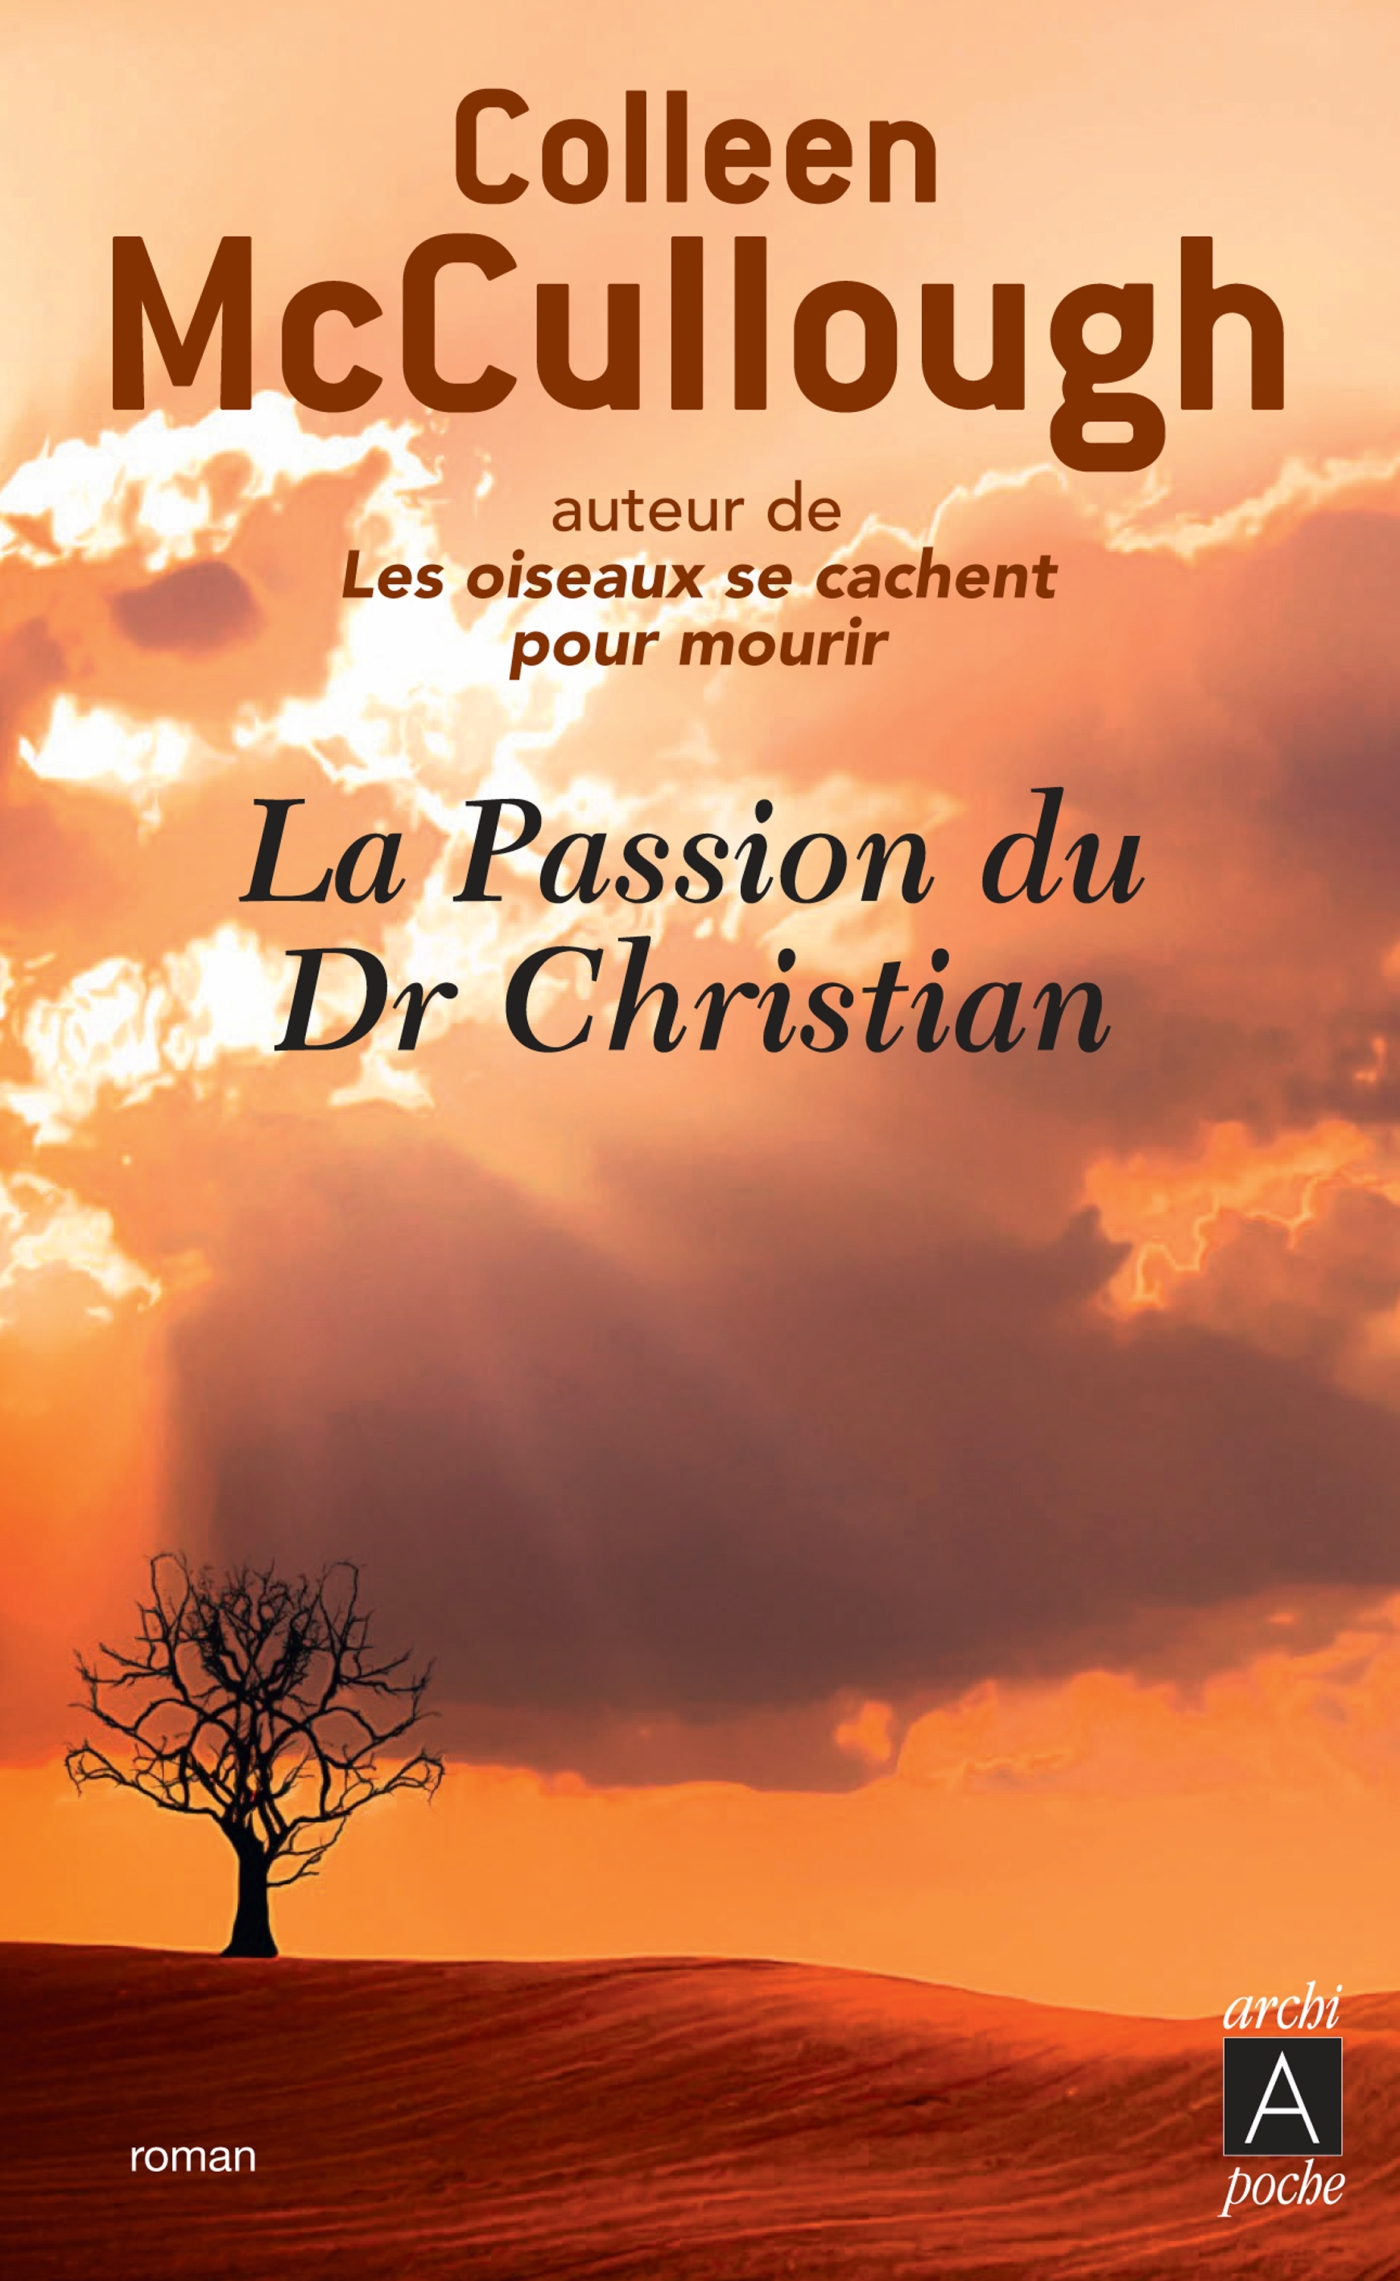 La passion du Docteur Christian